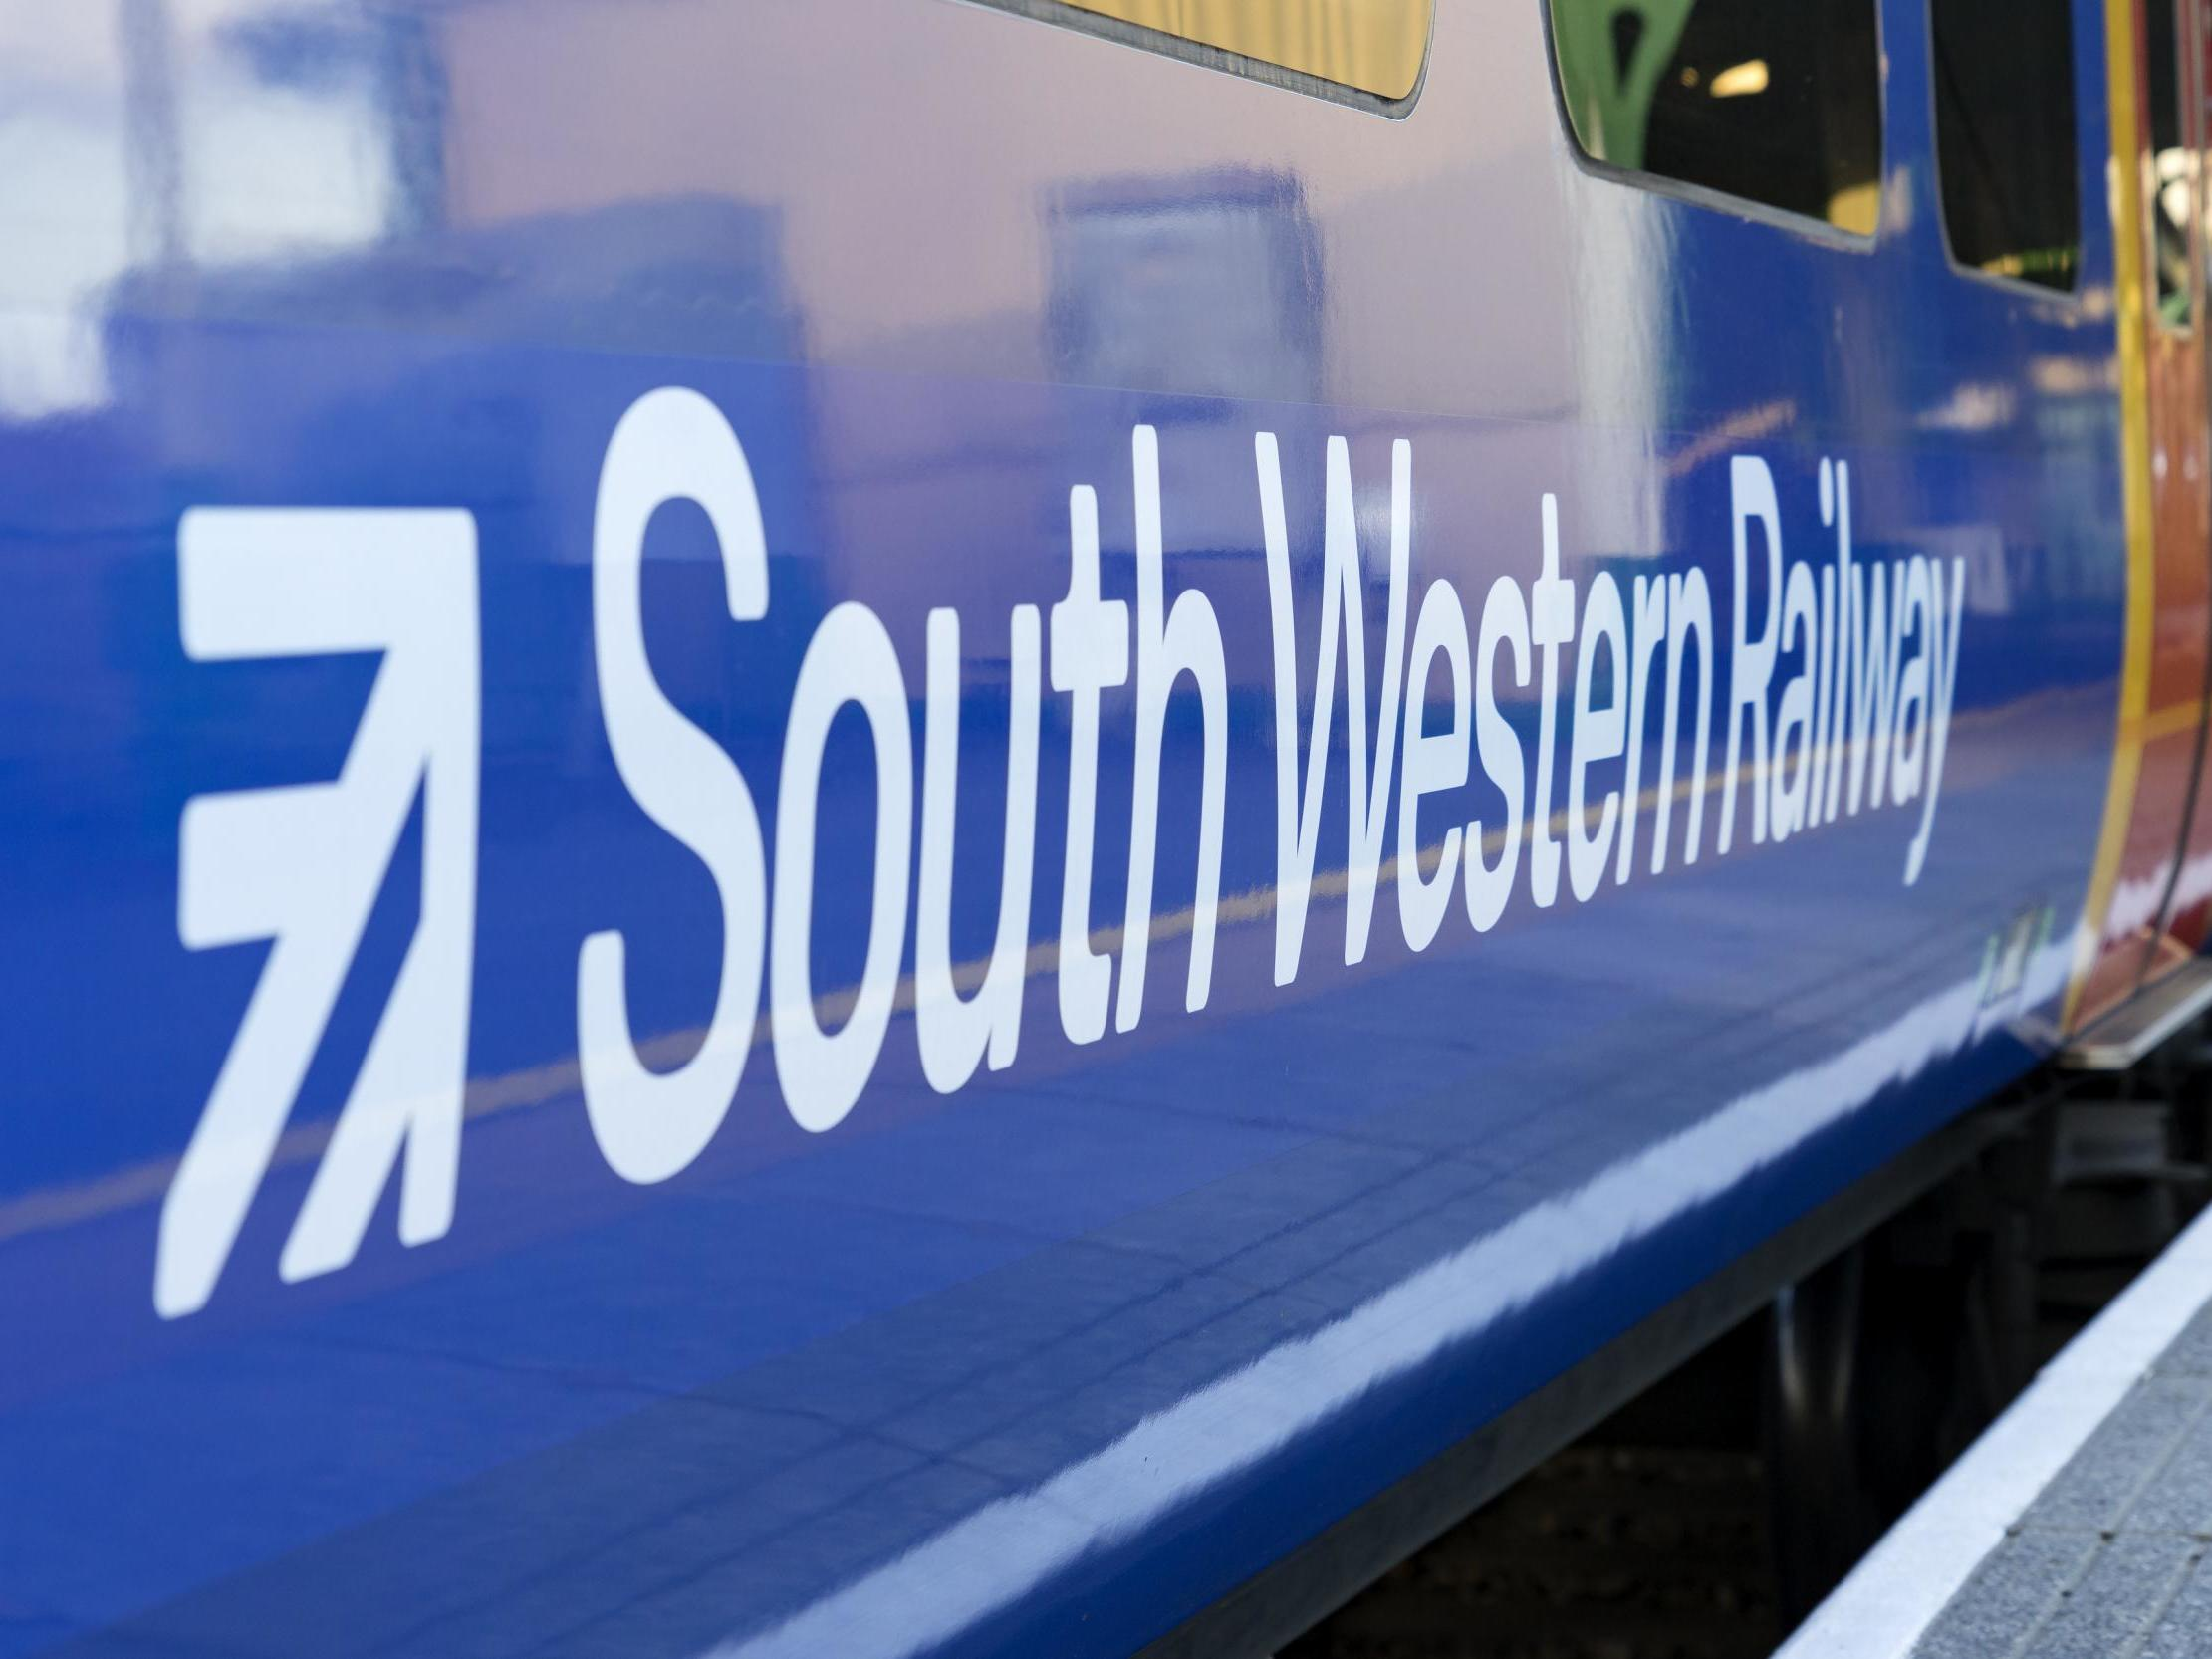 Rail bosses apologise after pornography broadcast over train's loudspeakers